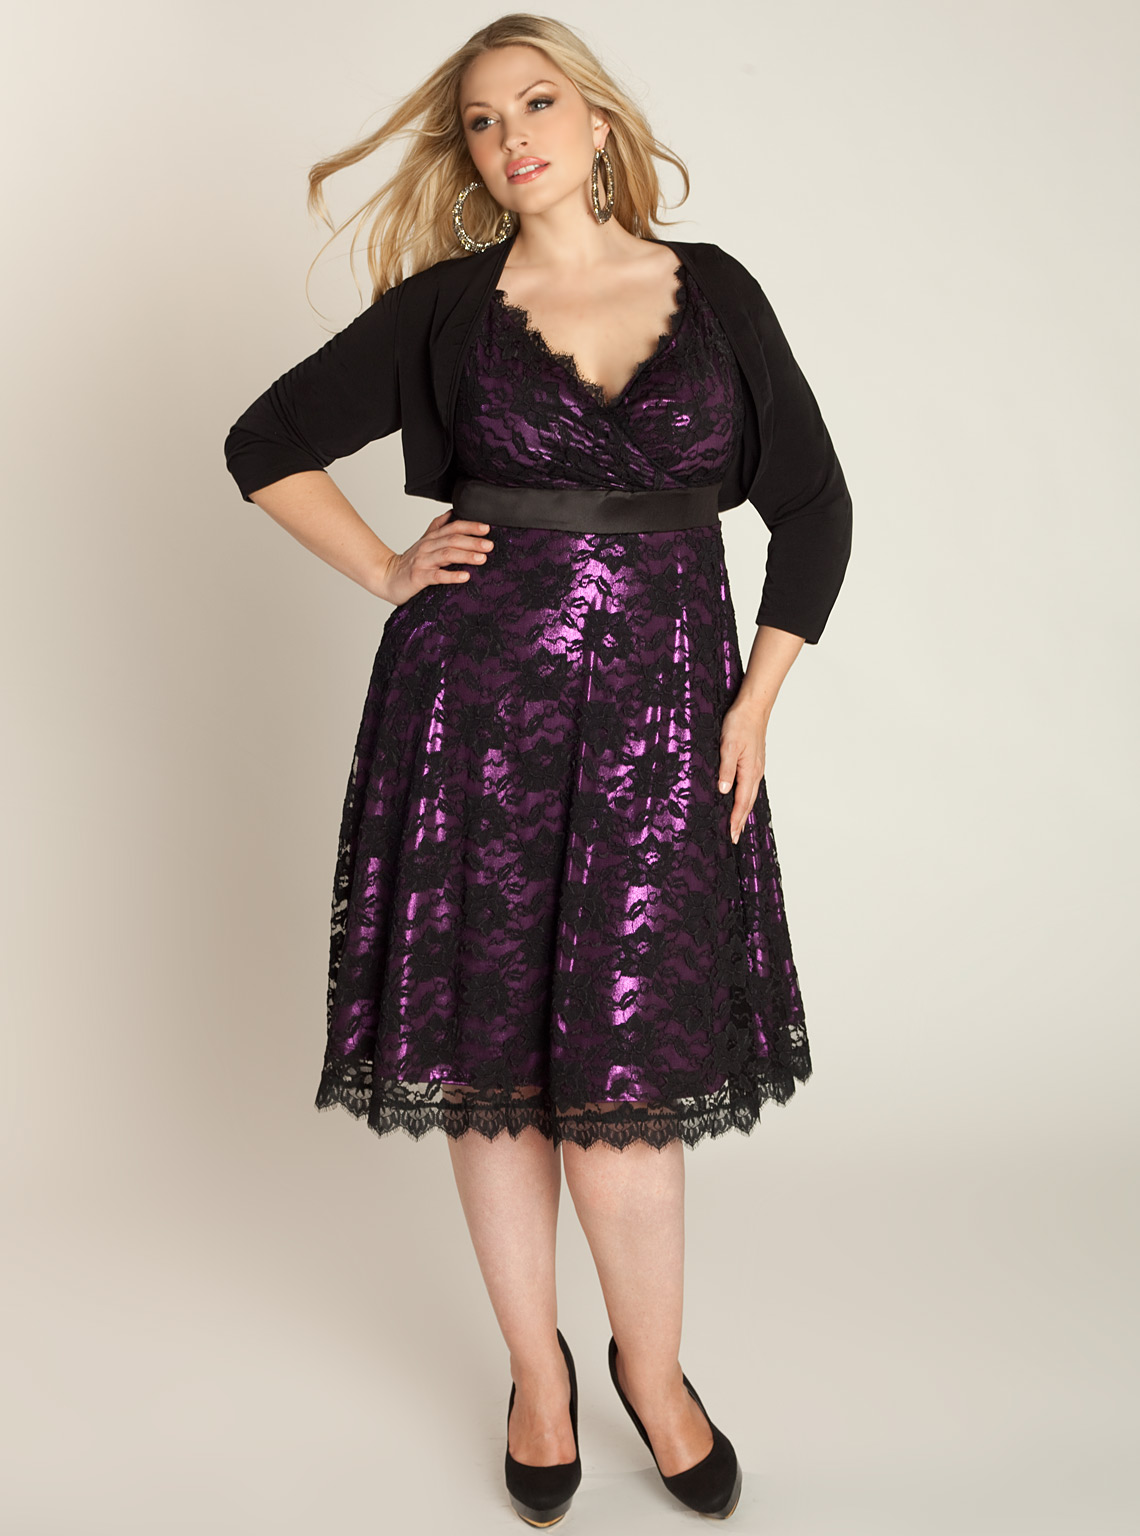 Shop plus size sleeveless or cold shoulder dresses to wear this season. You deserve a gorgeous dress for every occasion and party. For the best selection, choose from our plus size party & occasion dresses.